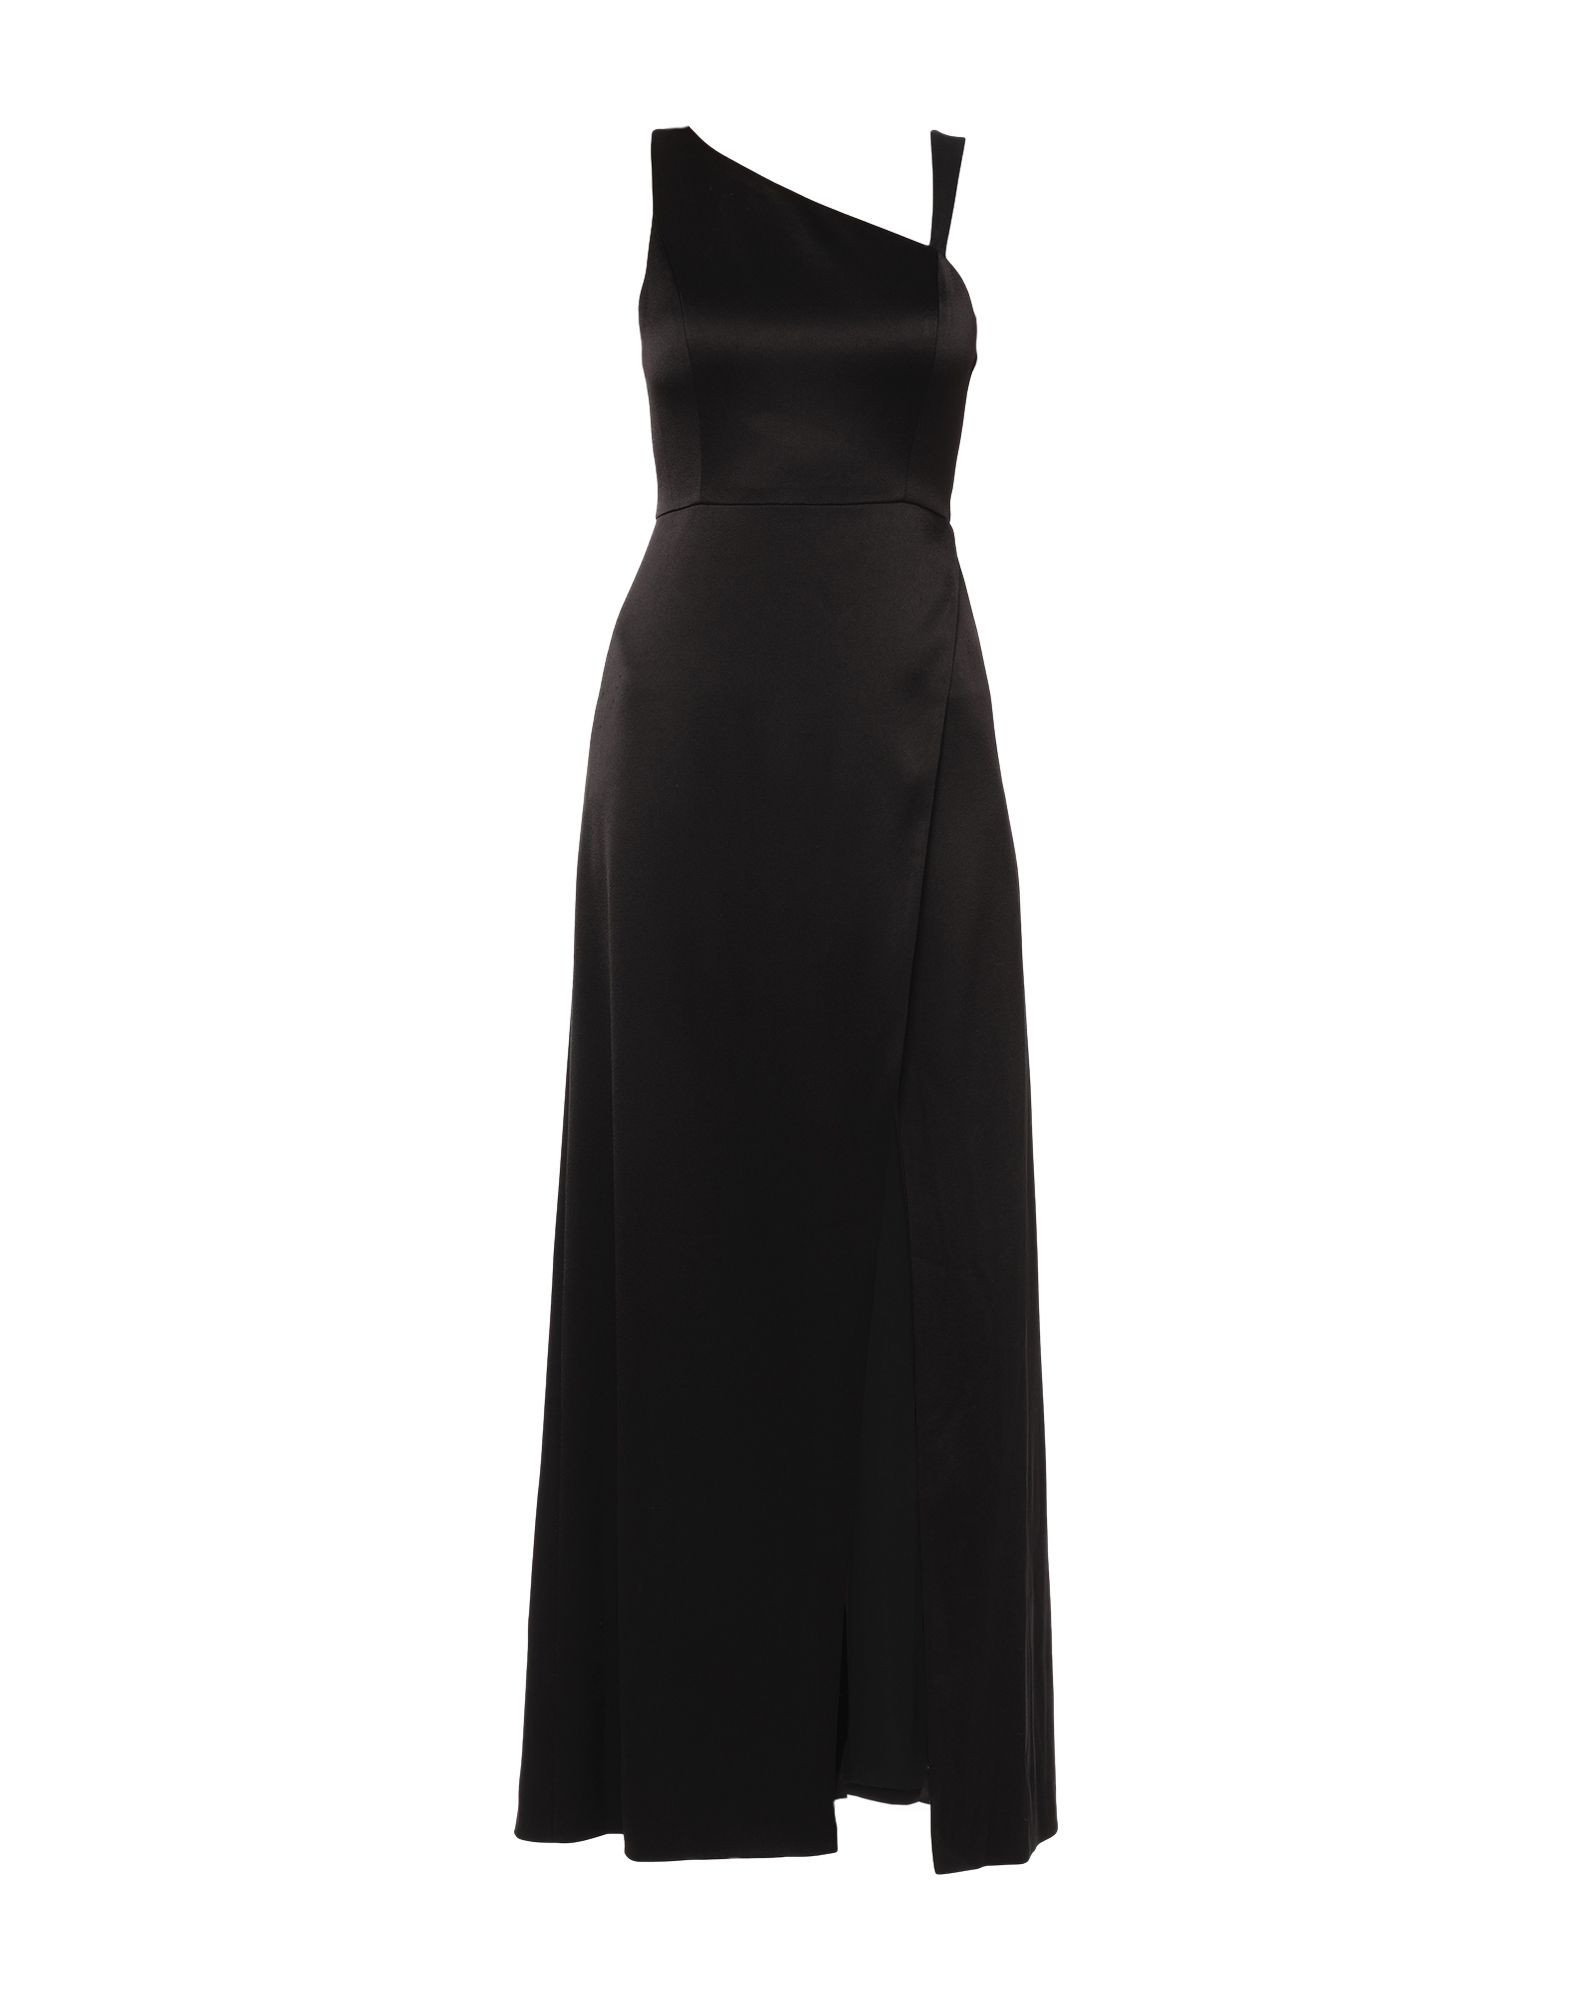 ALICE + OLIVIA Long dresses. leather, satin, no appliqués, solid color, round collar, sleeveless, rear closure, unlined, contains non-textile parts of animal origin. 75% Triacetate, 25% Polyester, Lambskin